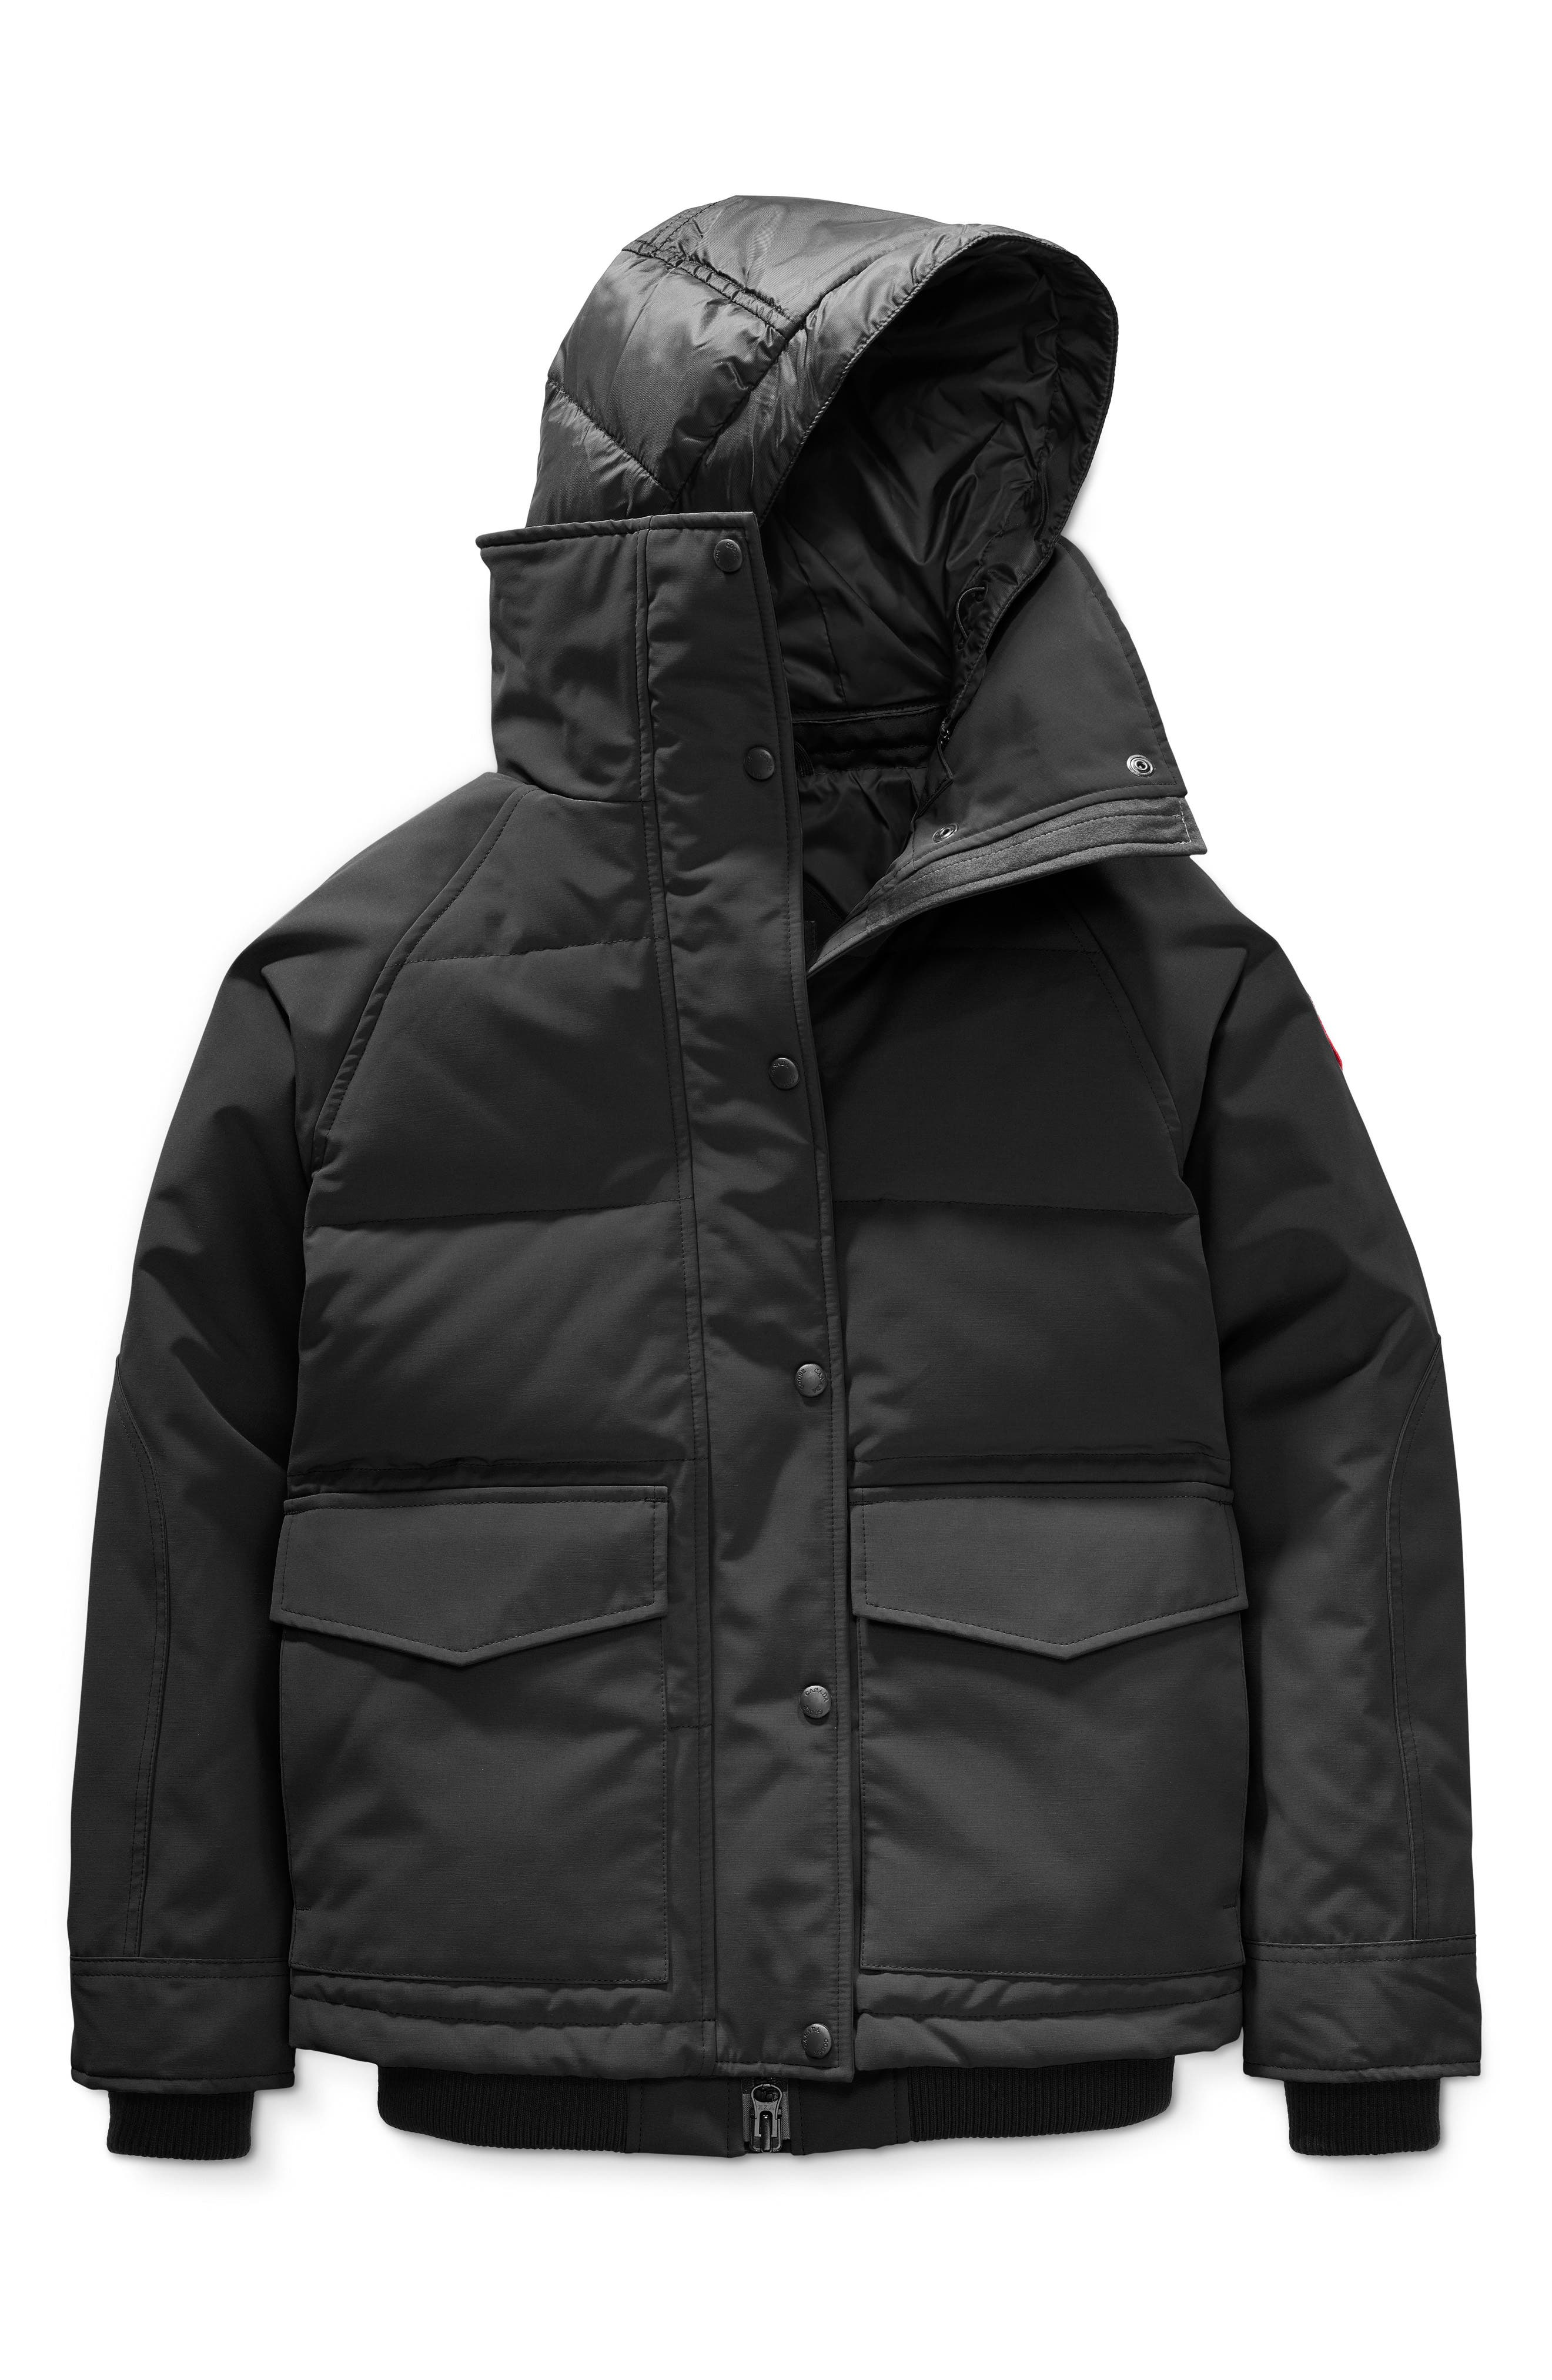 CANADA GOOSE, Deep Cove Arctic Tech Water Resistant 625 Fill Power Down Bomber Jacket, Alternate thumbnail 5, color, BLACK